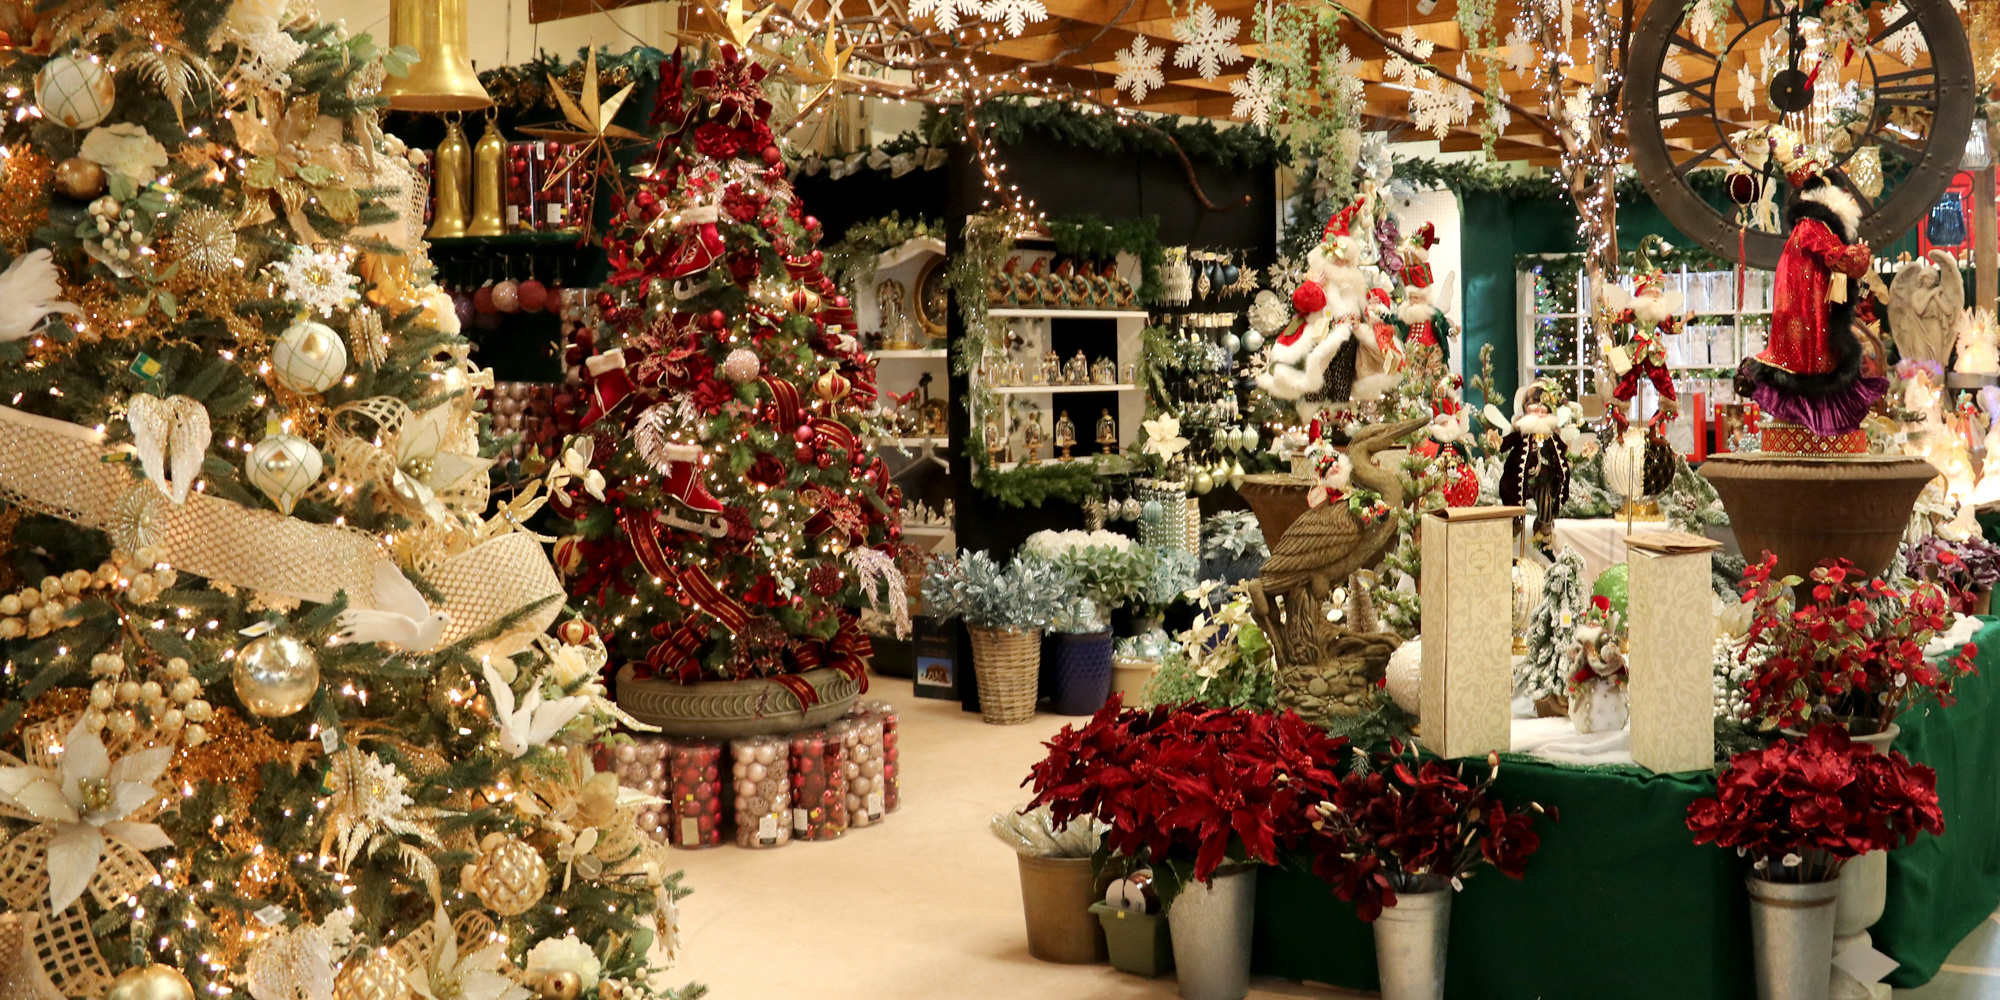 The Christmas Showroom at Down to Earth Living